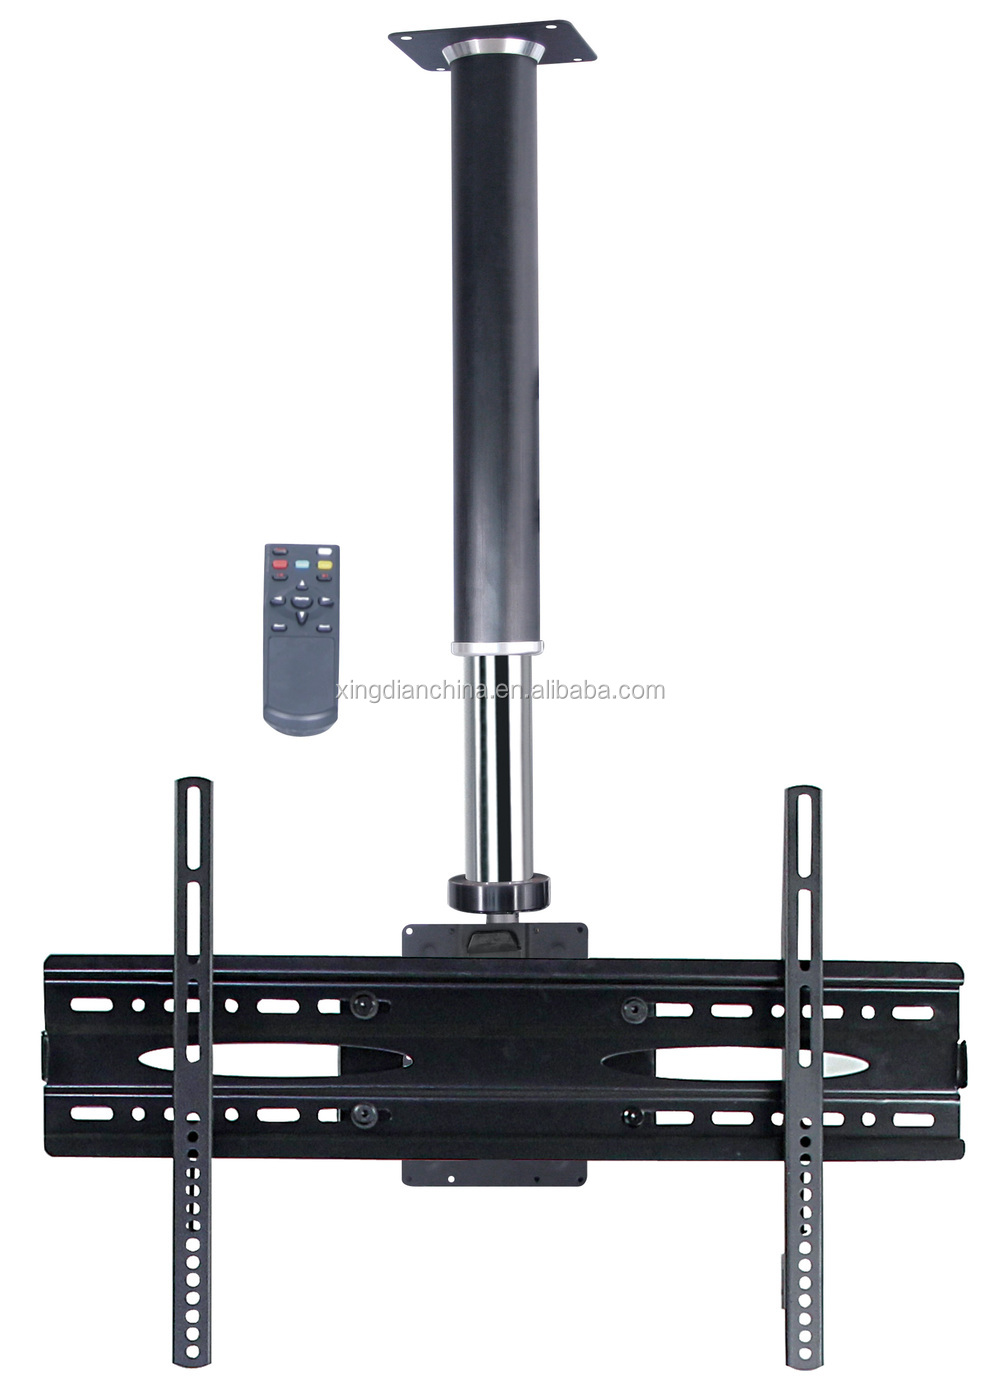 Lcd tv ceiling mount bracket webshop tv lift with remote for Motorized ceiling tv mount